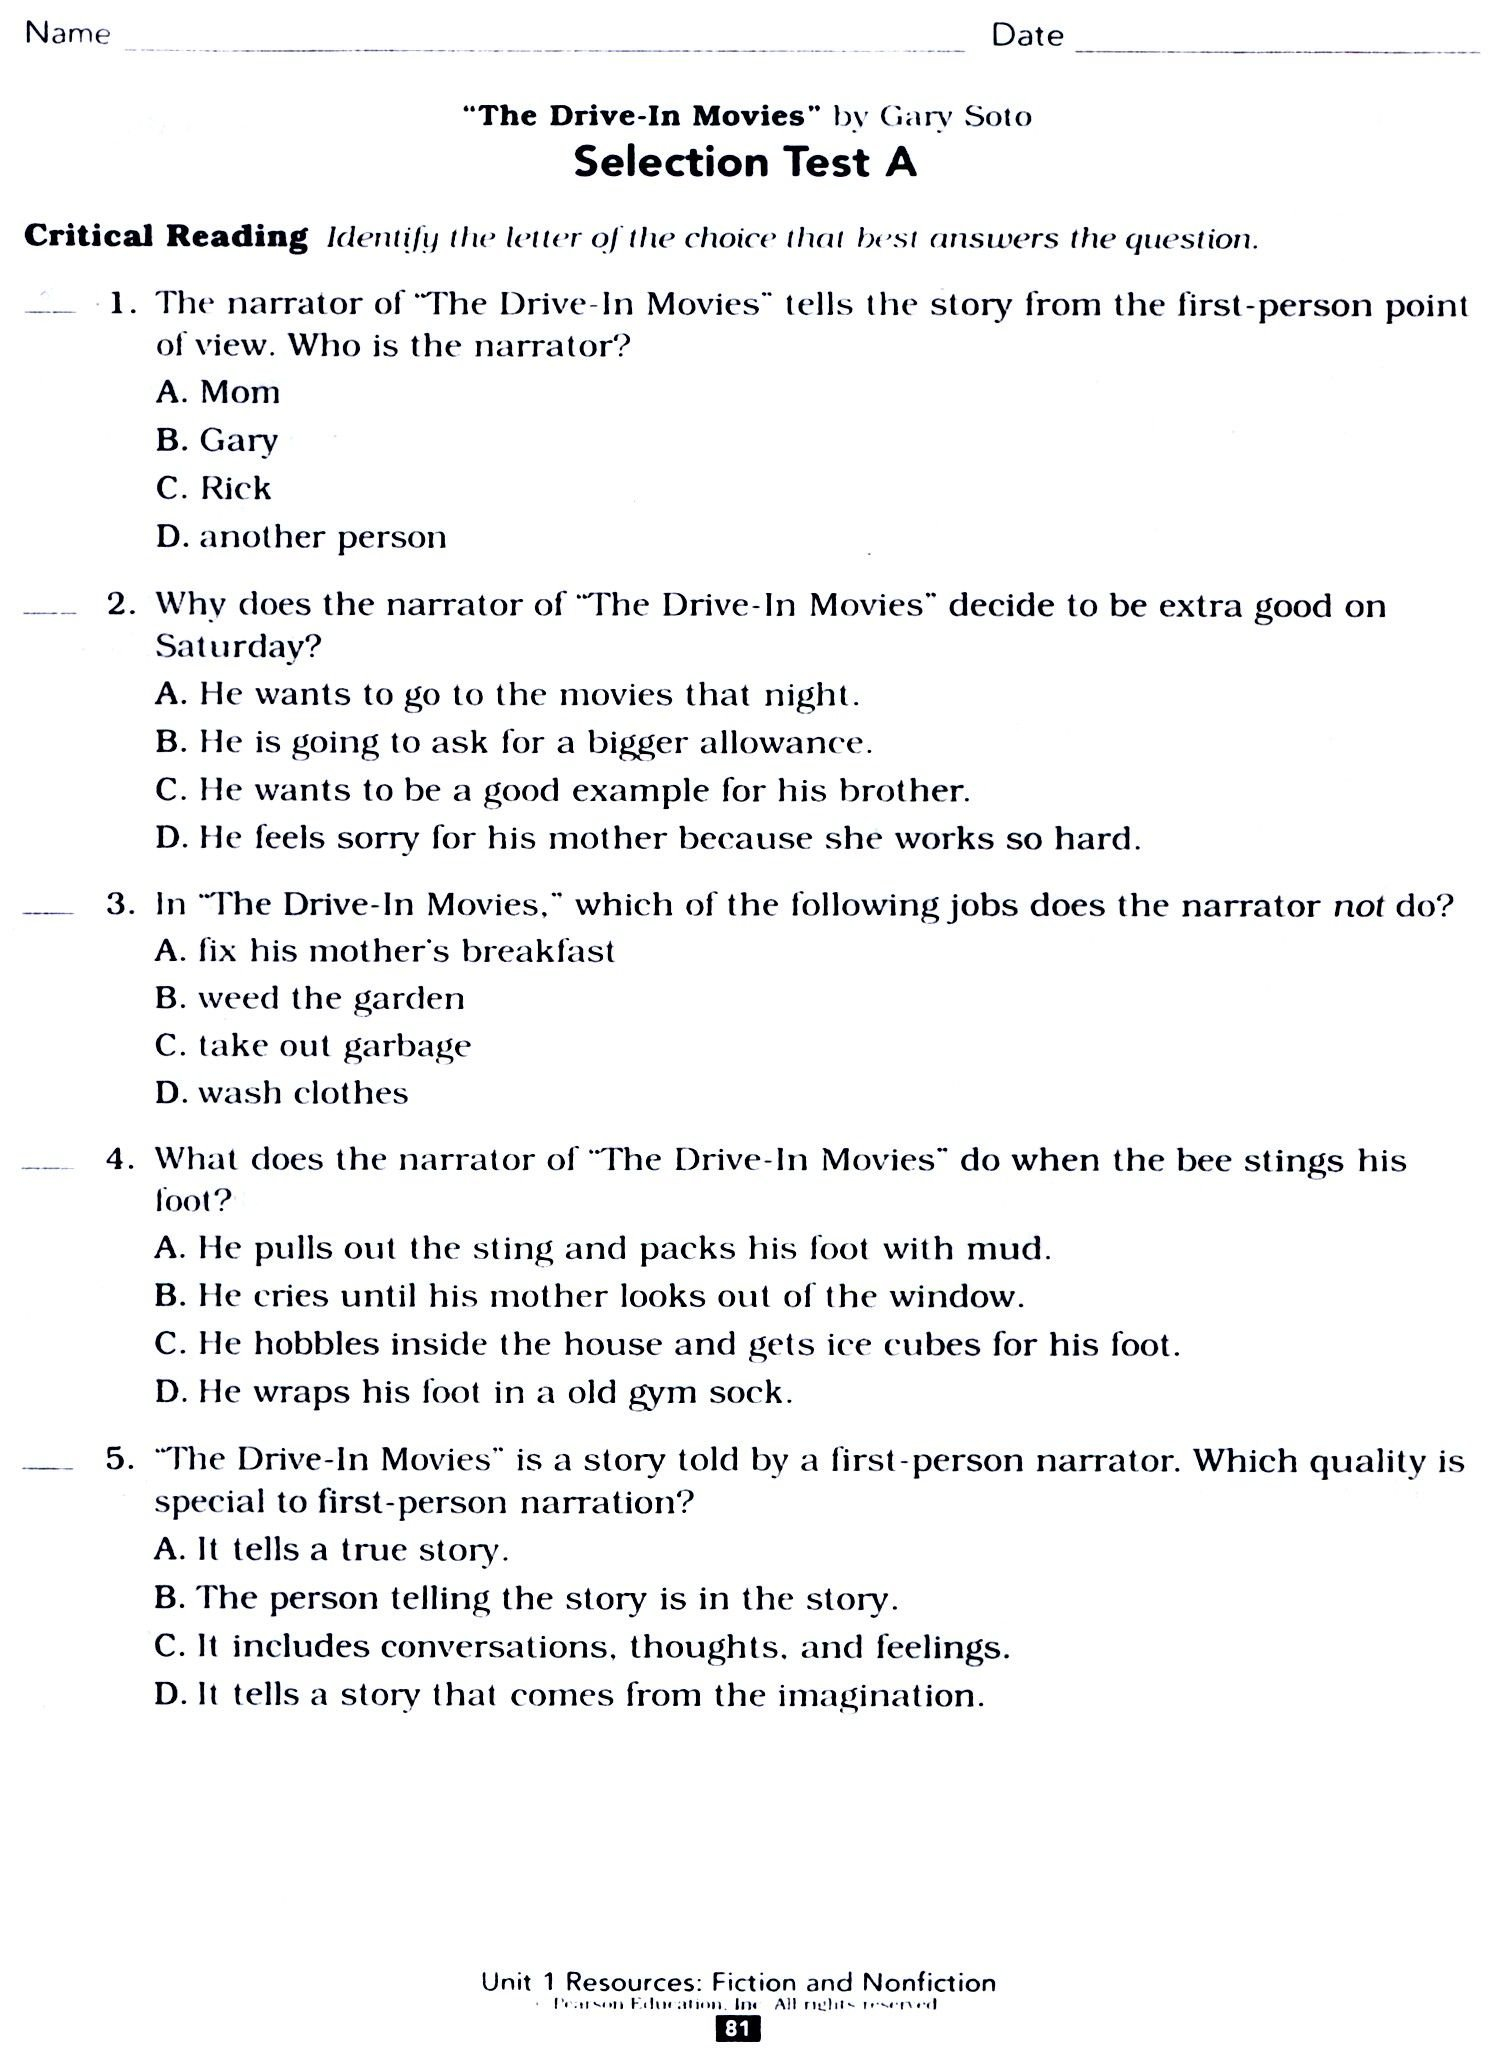 6Th Grade Social Studies Worksheets With Answer Key  Briefencounters Together With Sixth Grade Social Studies Worksheets